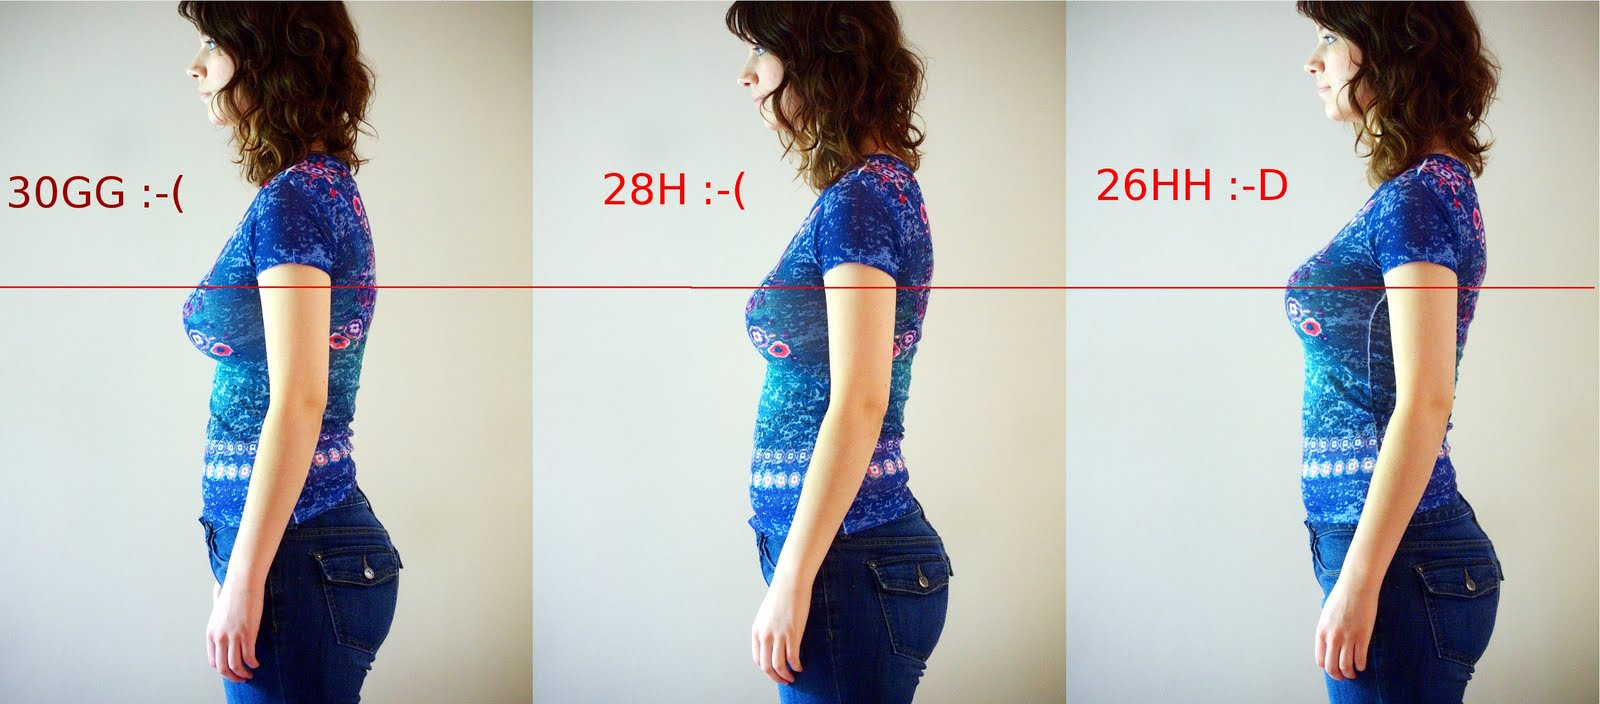 Breast Size Comparison Photos http://www.thinandcurvy.com/2011/05/where-to-find-26-and-24-band-bras-and.html